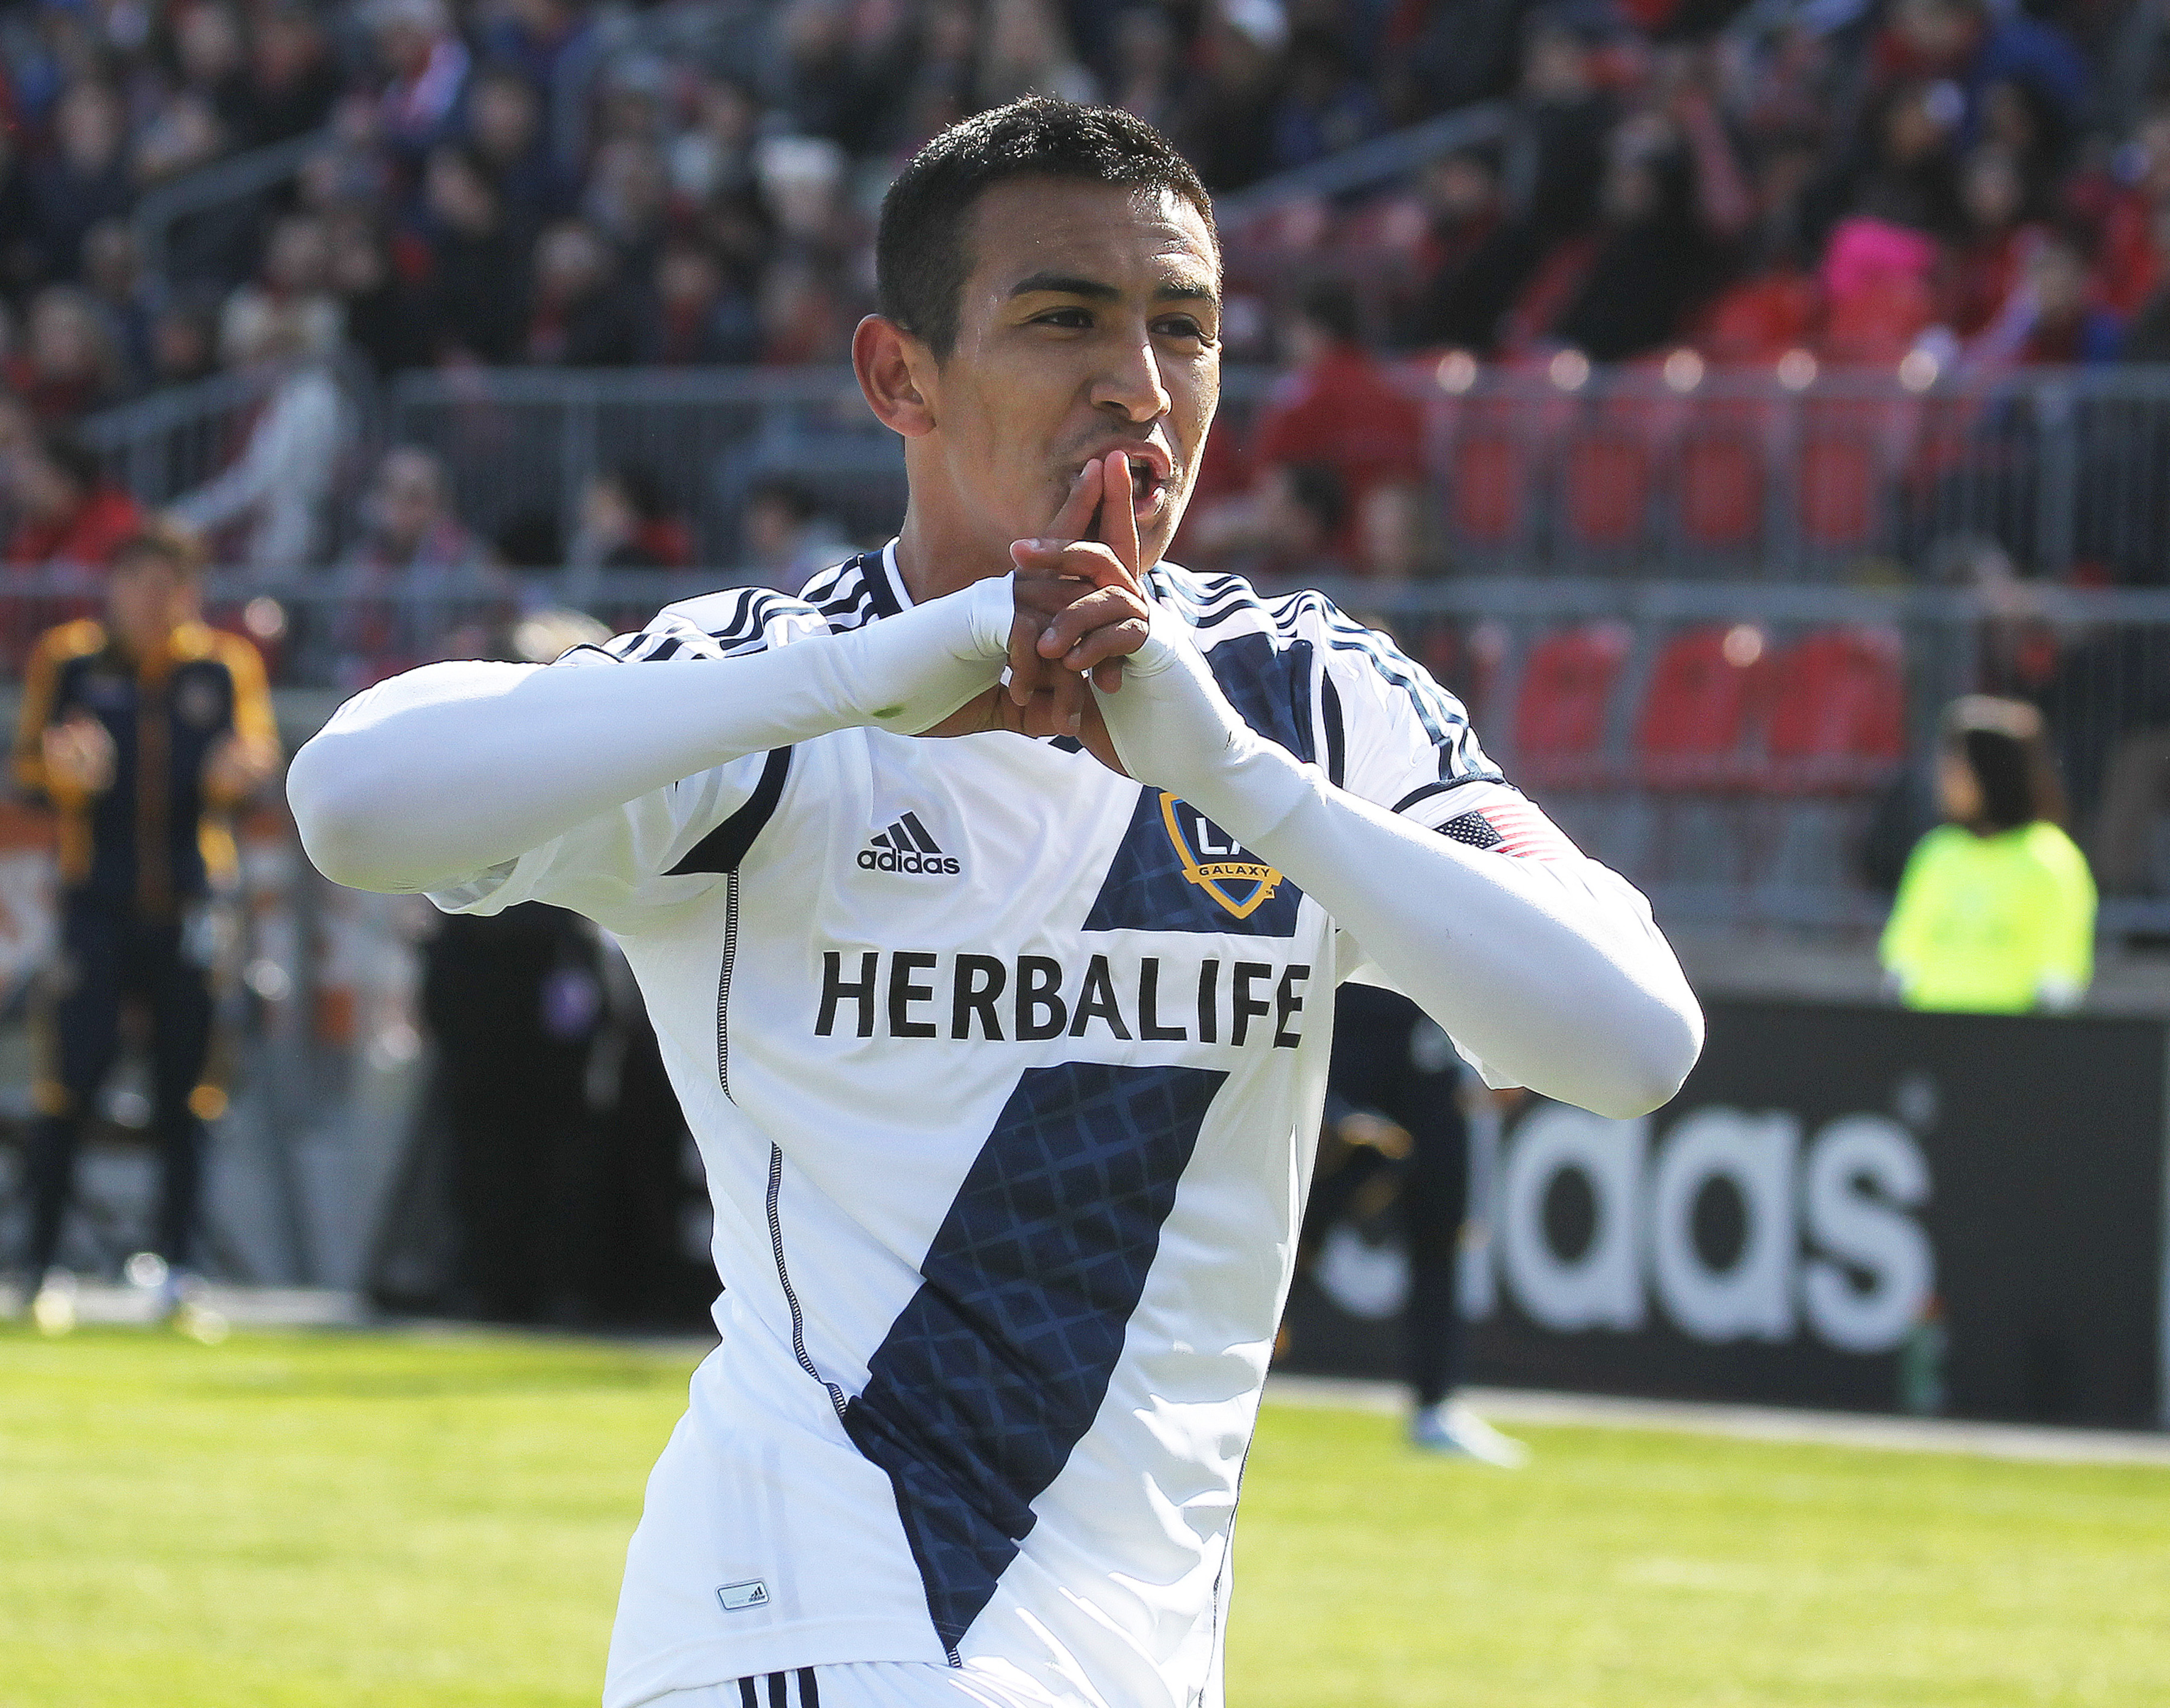 The Galaxy's Jose Villareal's propeled the Galaxy to the Reserve League win and title.